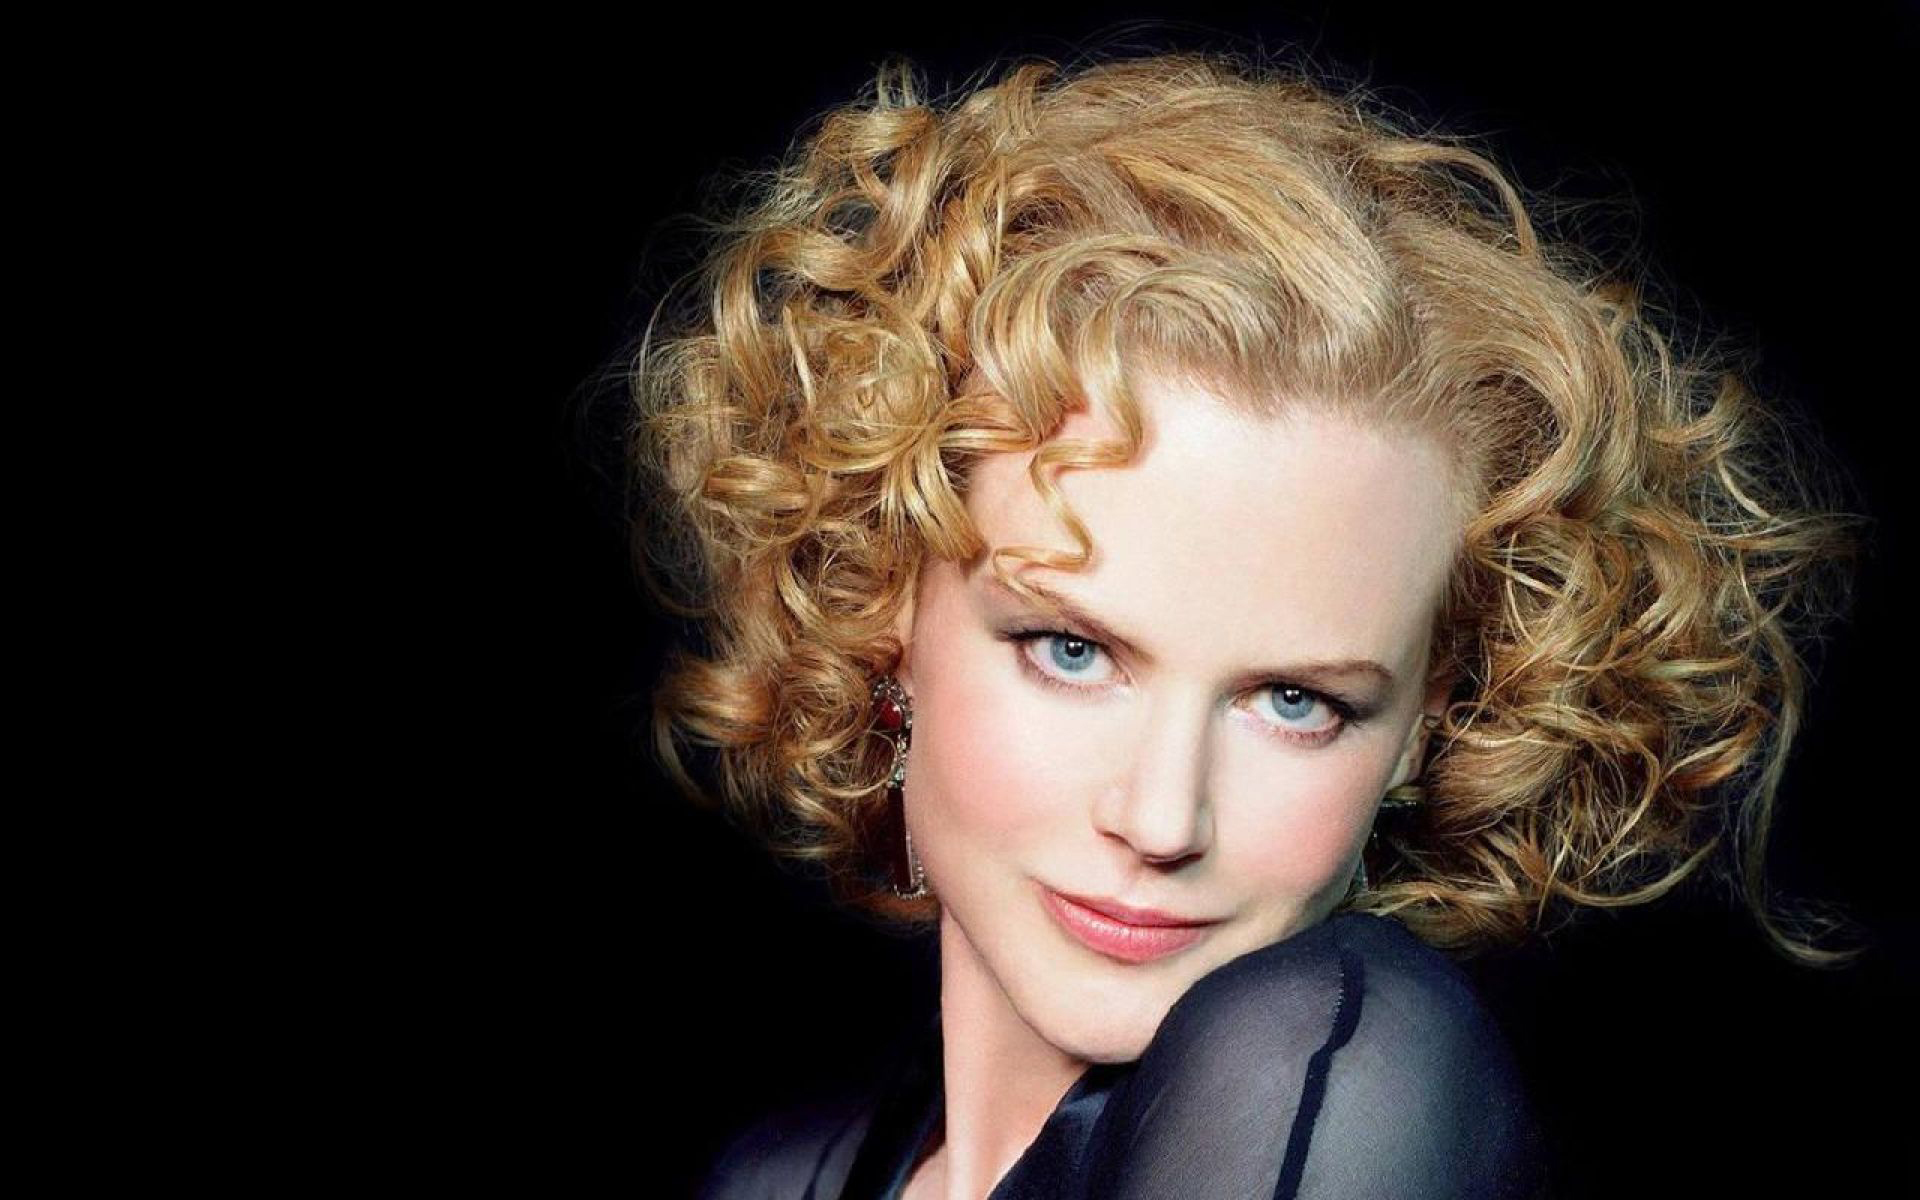 46766 download wallpaper People, Girls, Nicole Kidman screensavers and pictures for free